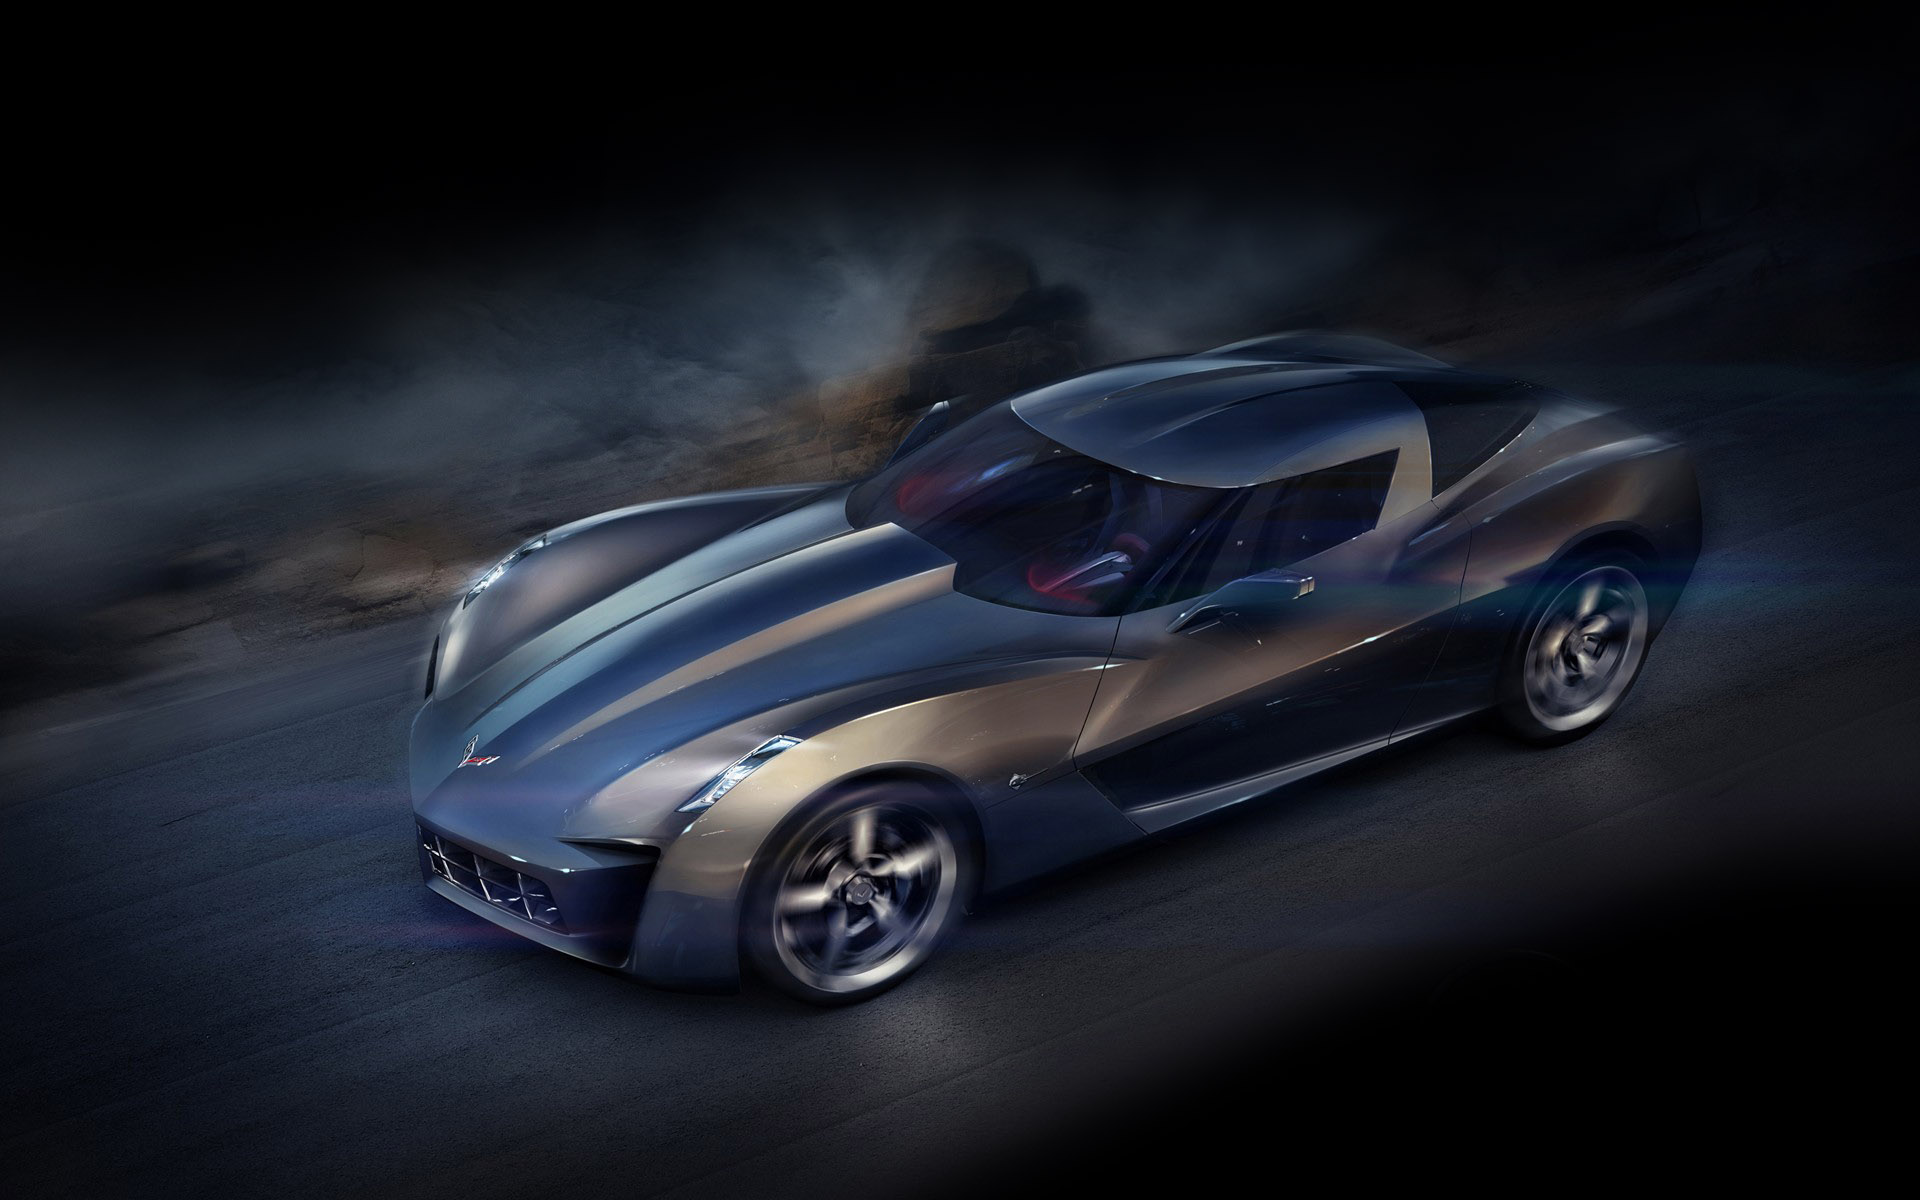 COOL WALLPAPER Cool Fast Cars Wallpapers 1920x1200